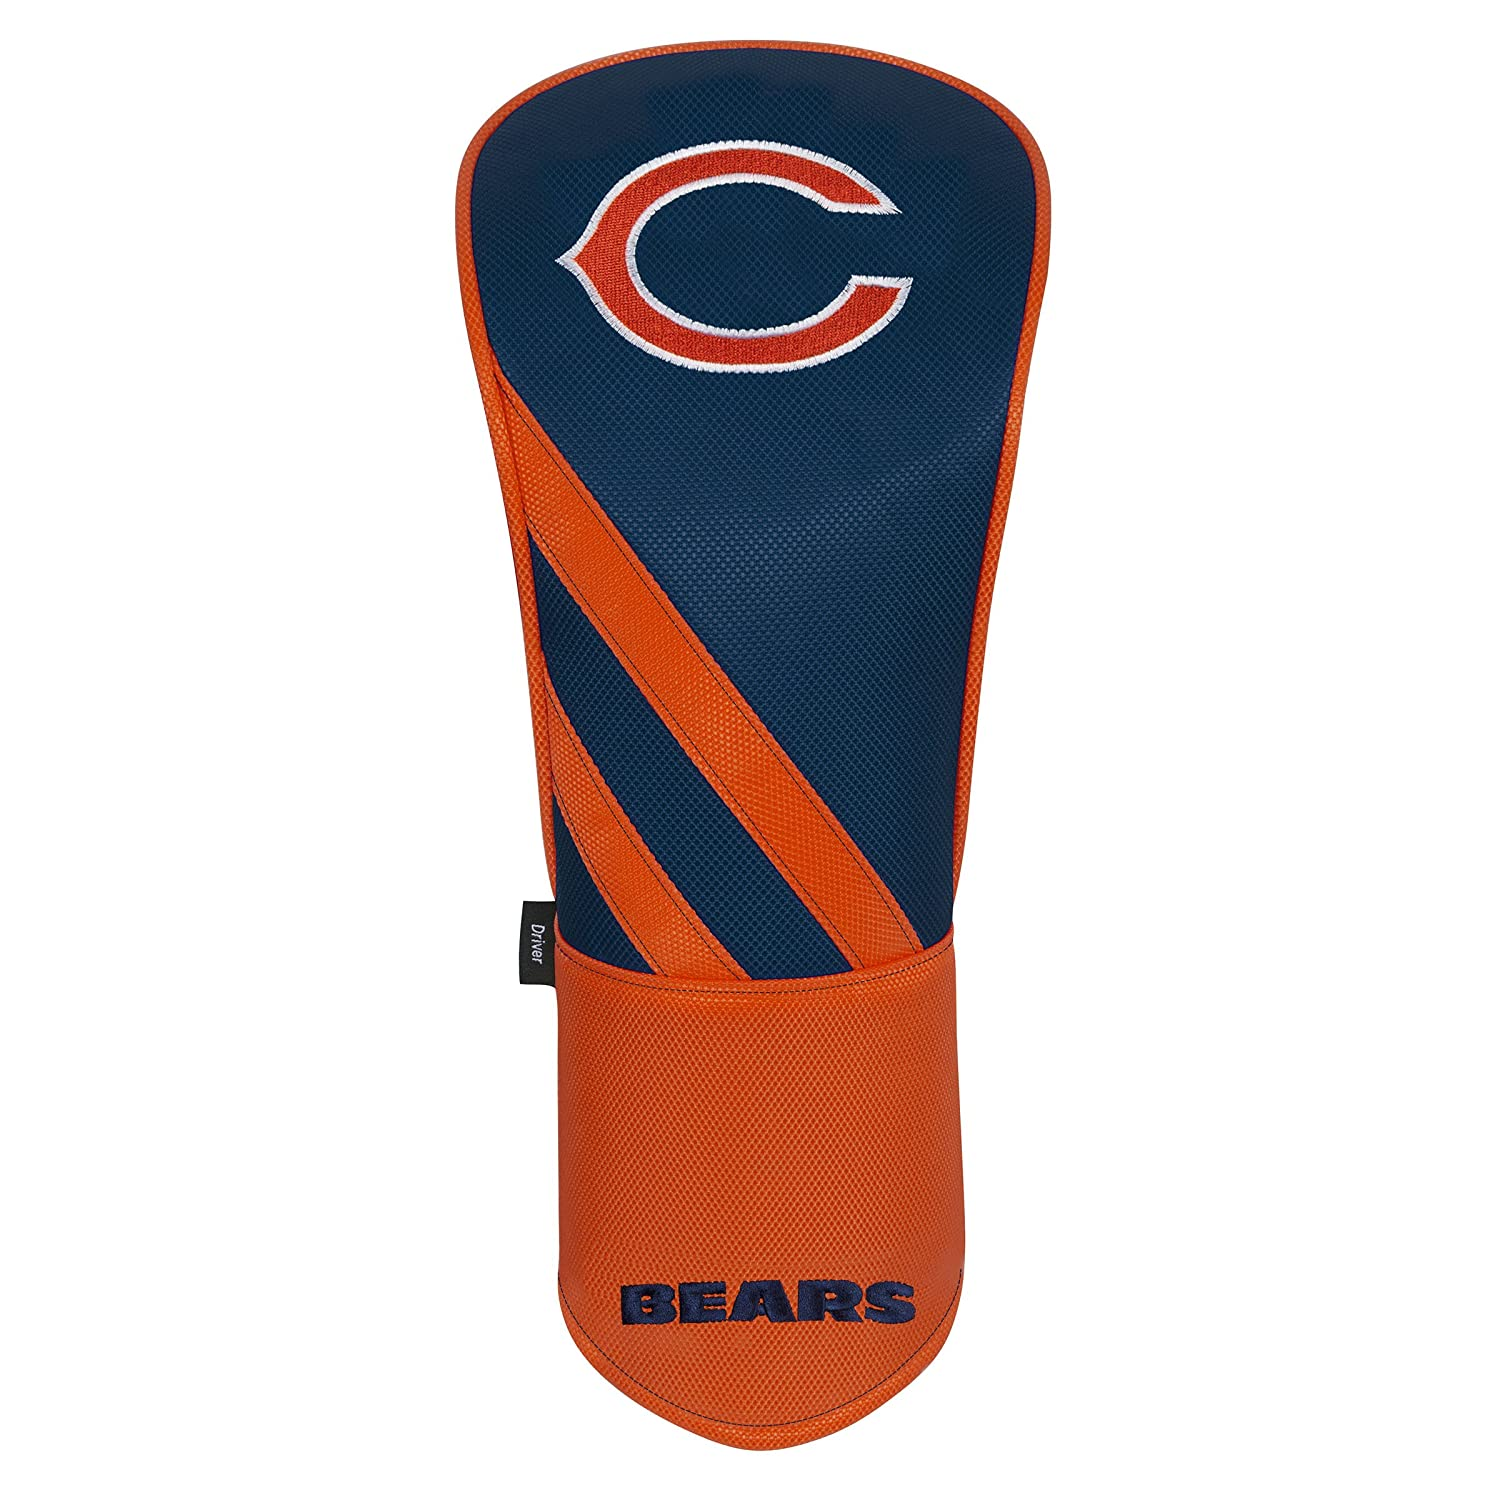 新品 Team B079MB7MJB Effort NFL個々ドライバーヘッドカバー B079MB7MJB Bears Chicago Chicago Bears, 野付郡:503d18ae --- irlandskayaliteratura.org